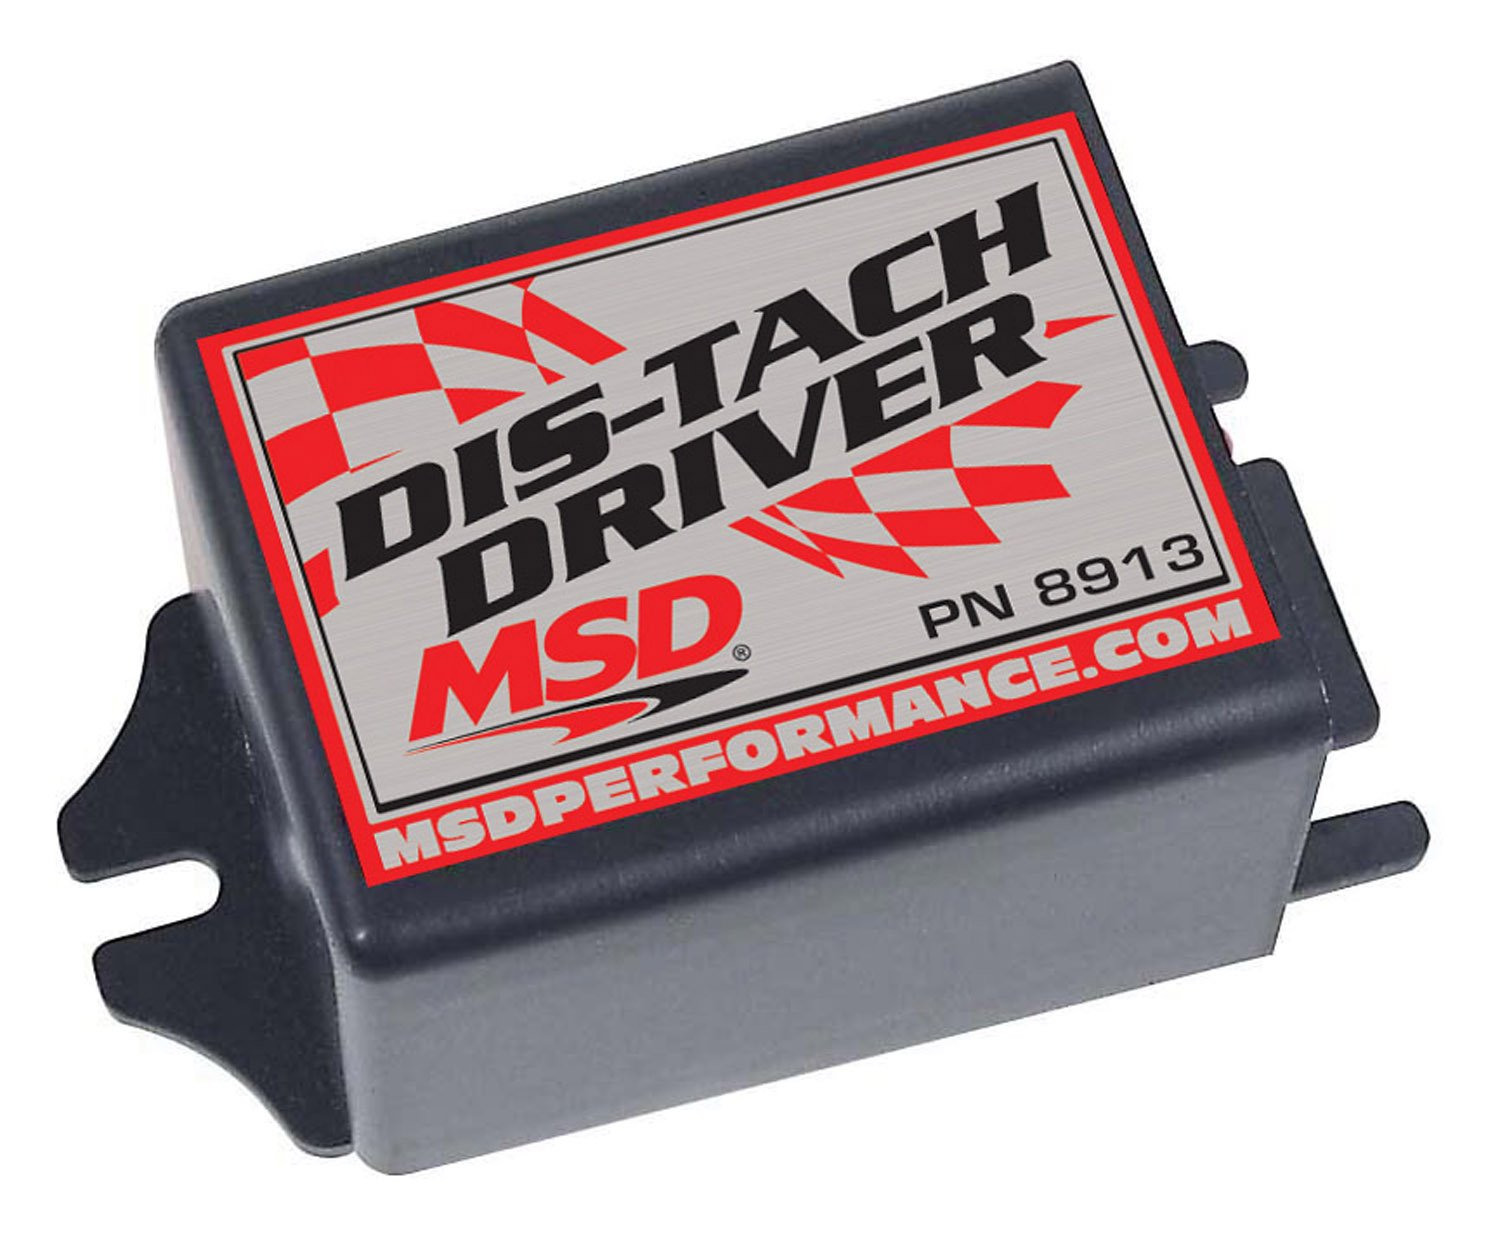 8913 - Distributorless Tach Driver Image